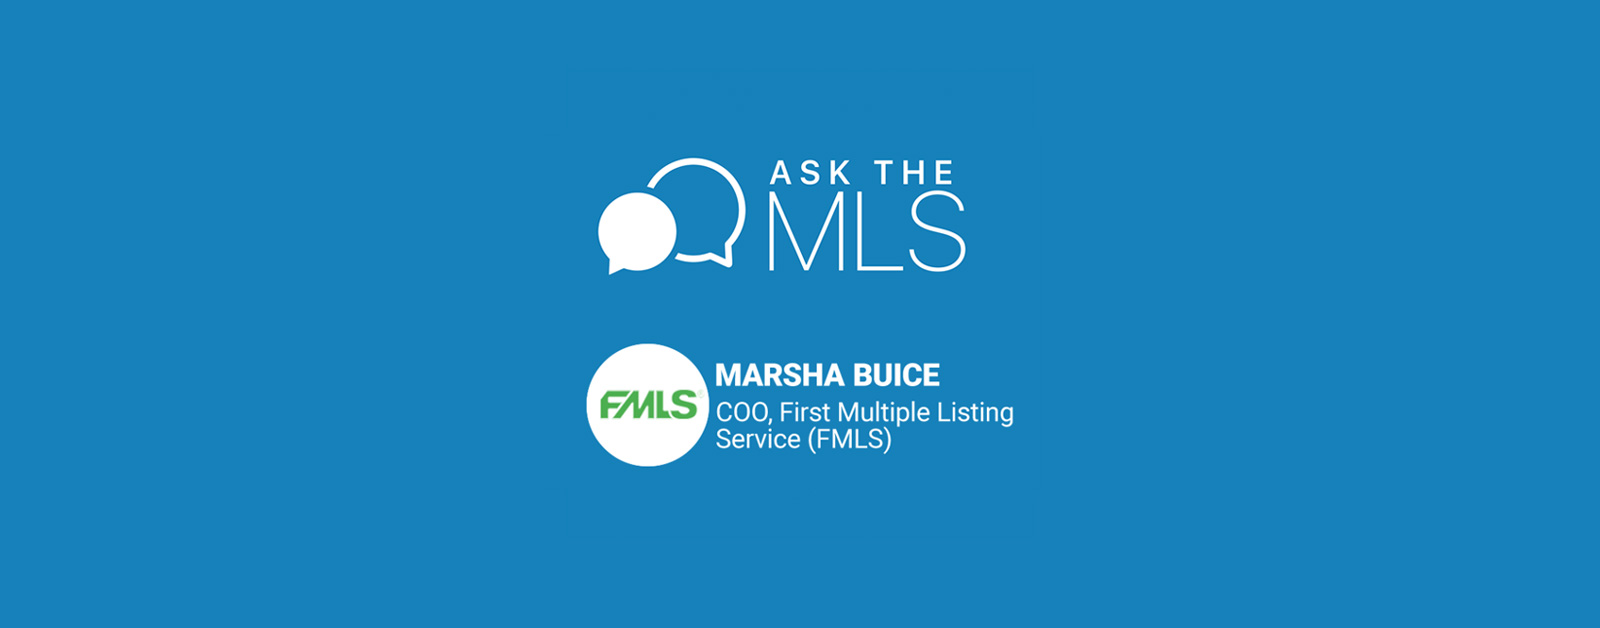 Marsha Bruce - FMLS - Ask the MLS